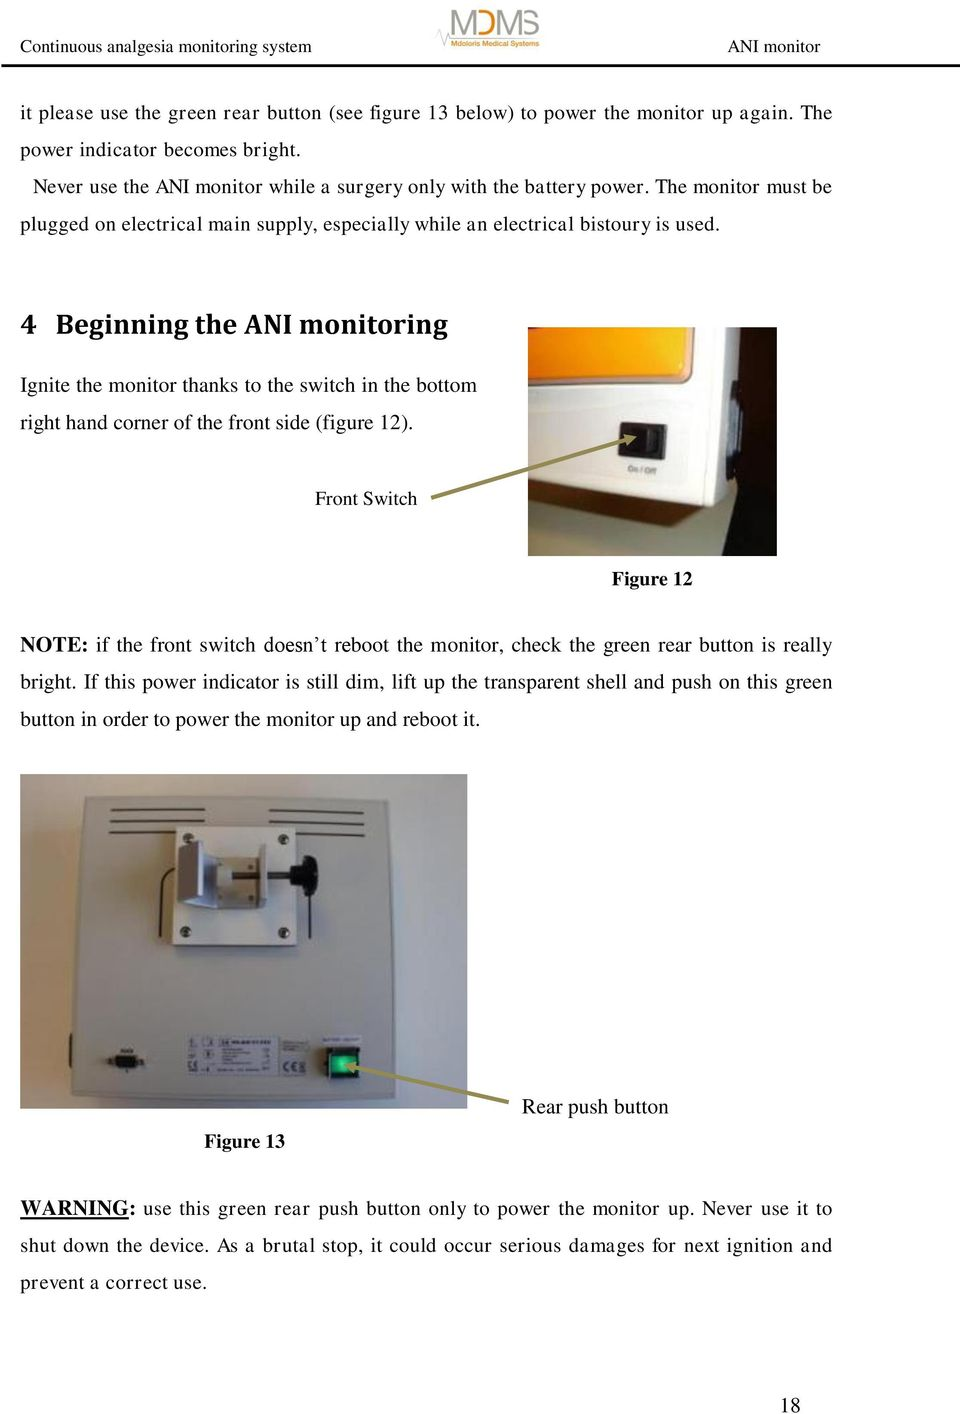 4 Beginning the ing Ignite the monitor thanks to the switch in the bottom right hand corner of the front side (figure 12).